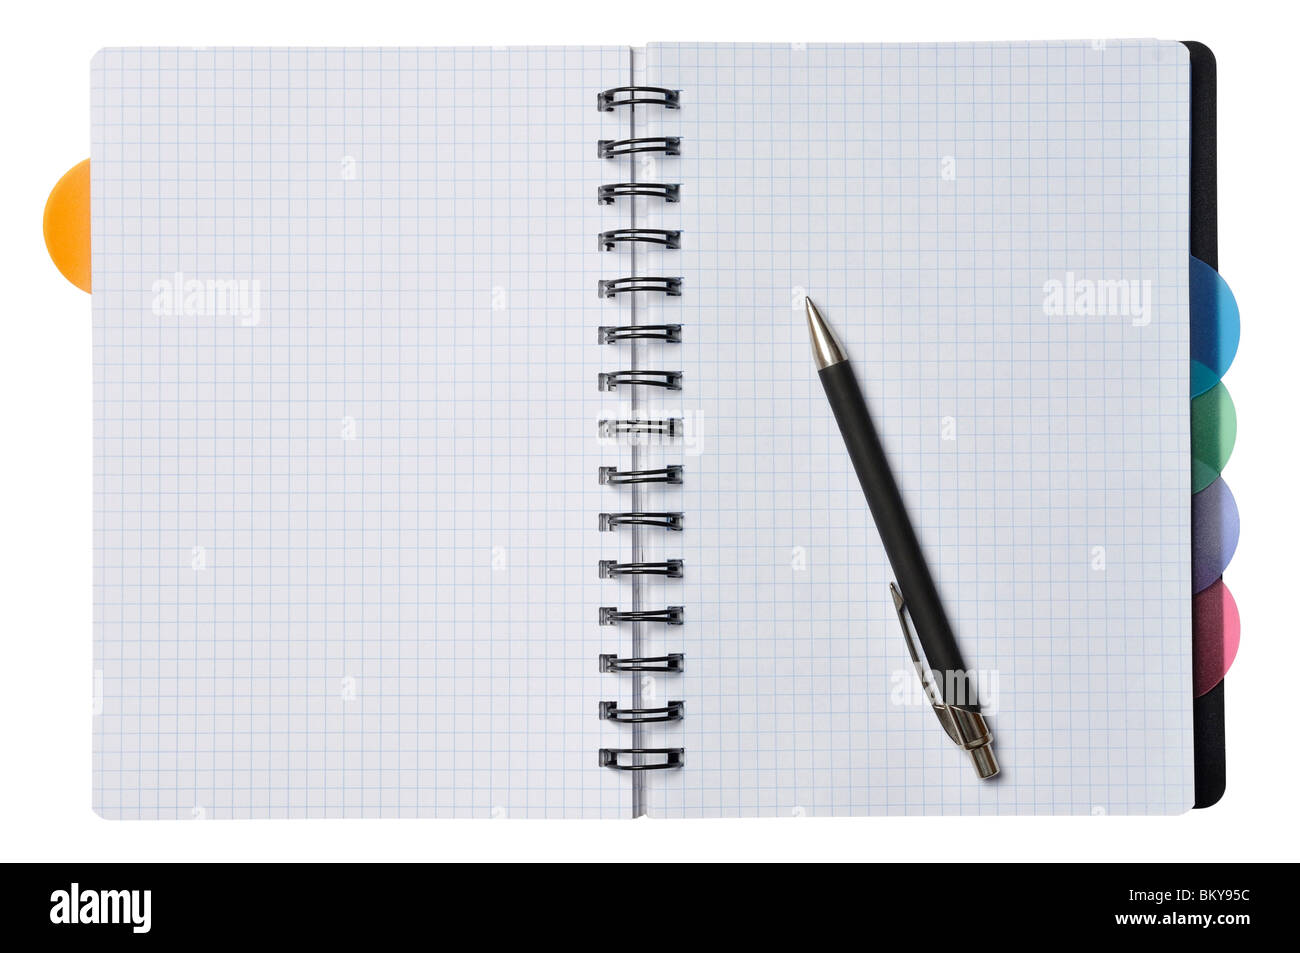 Notebook - Stock Image